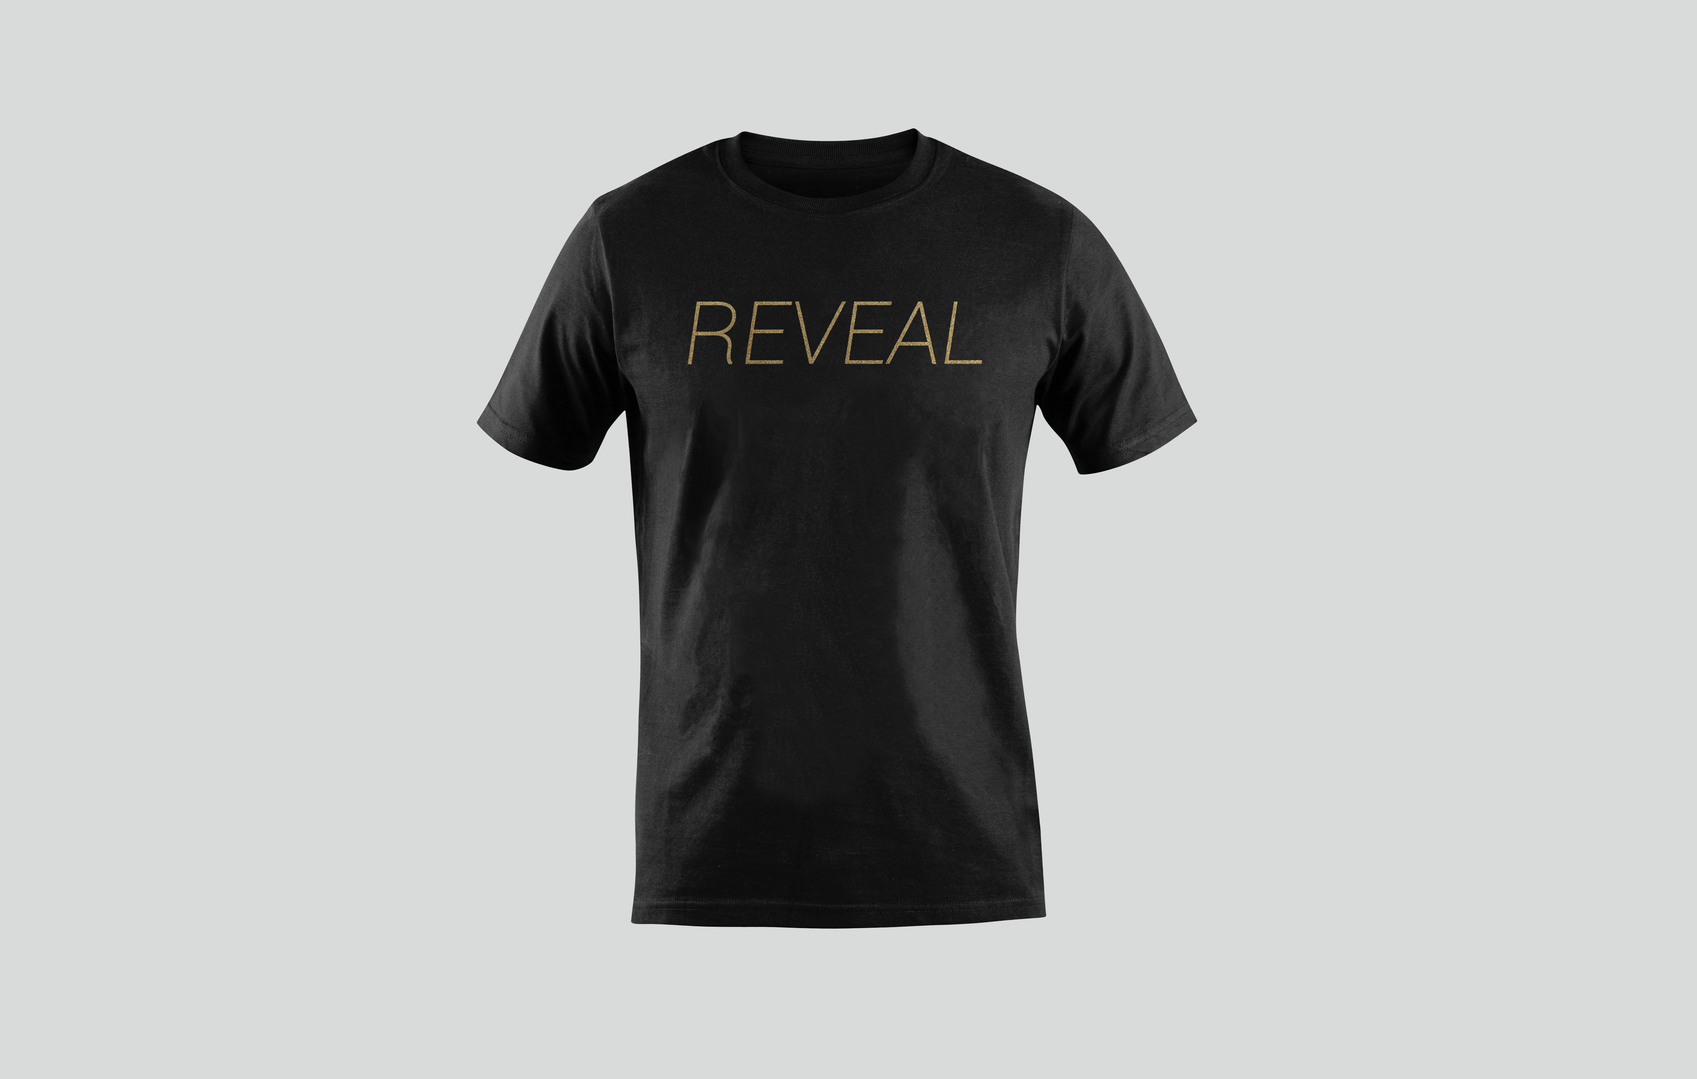 REVEAL-GOLD-T-SHIRT-MOCK-UP.png